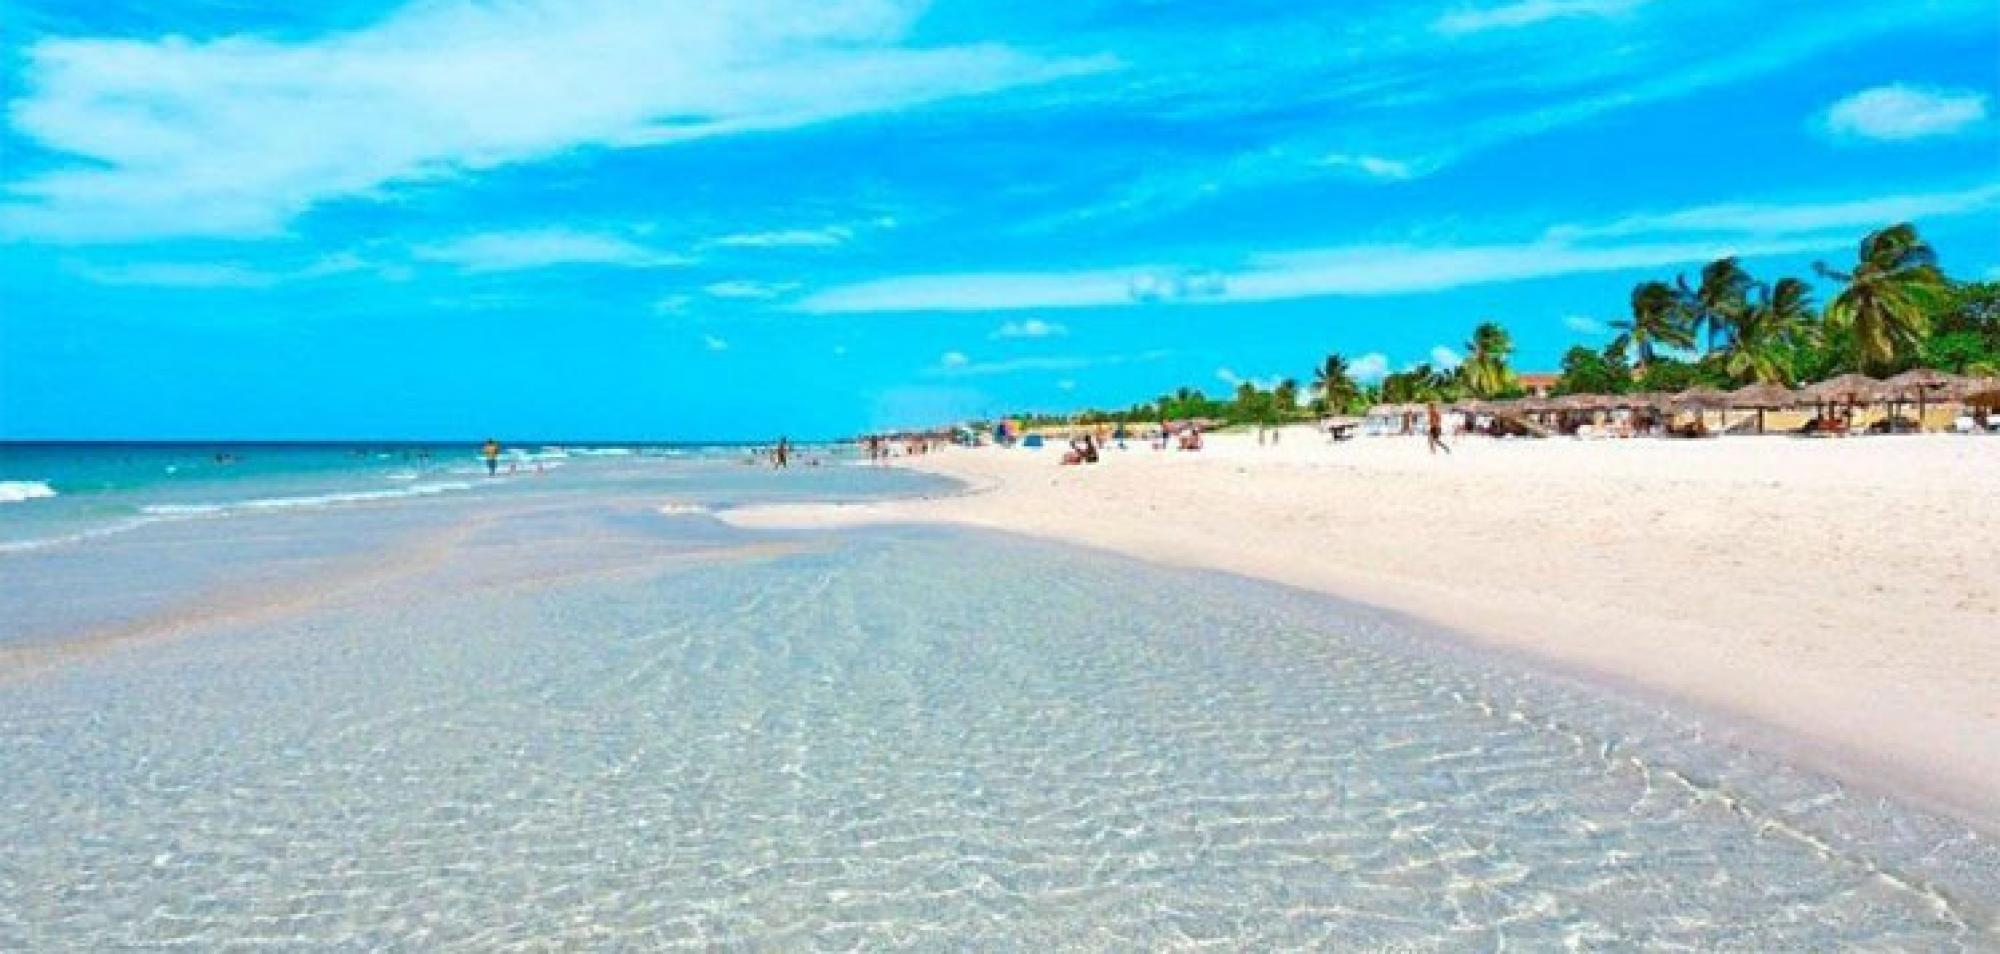 FitCuba 2020 will be held at Varadero Sun and Beach Resort